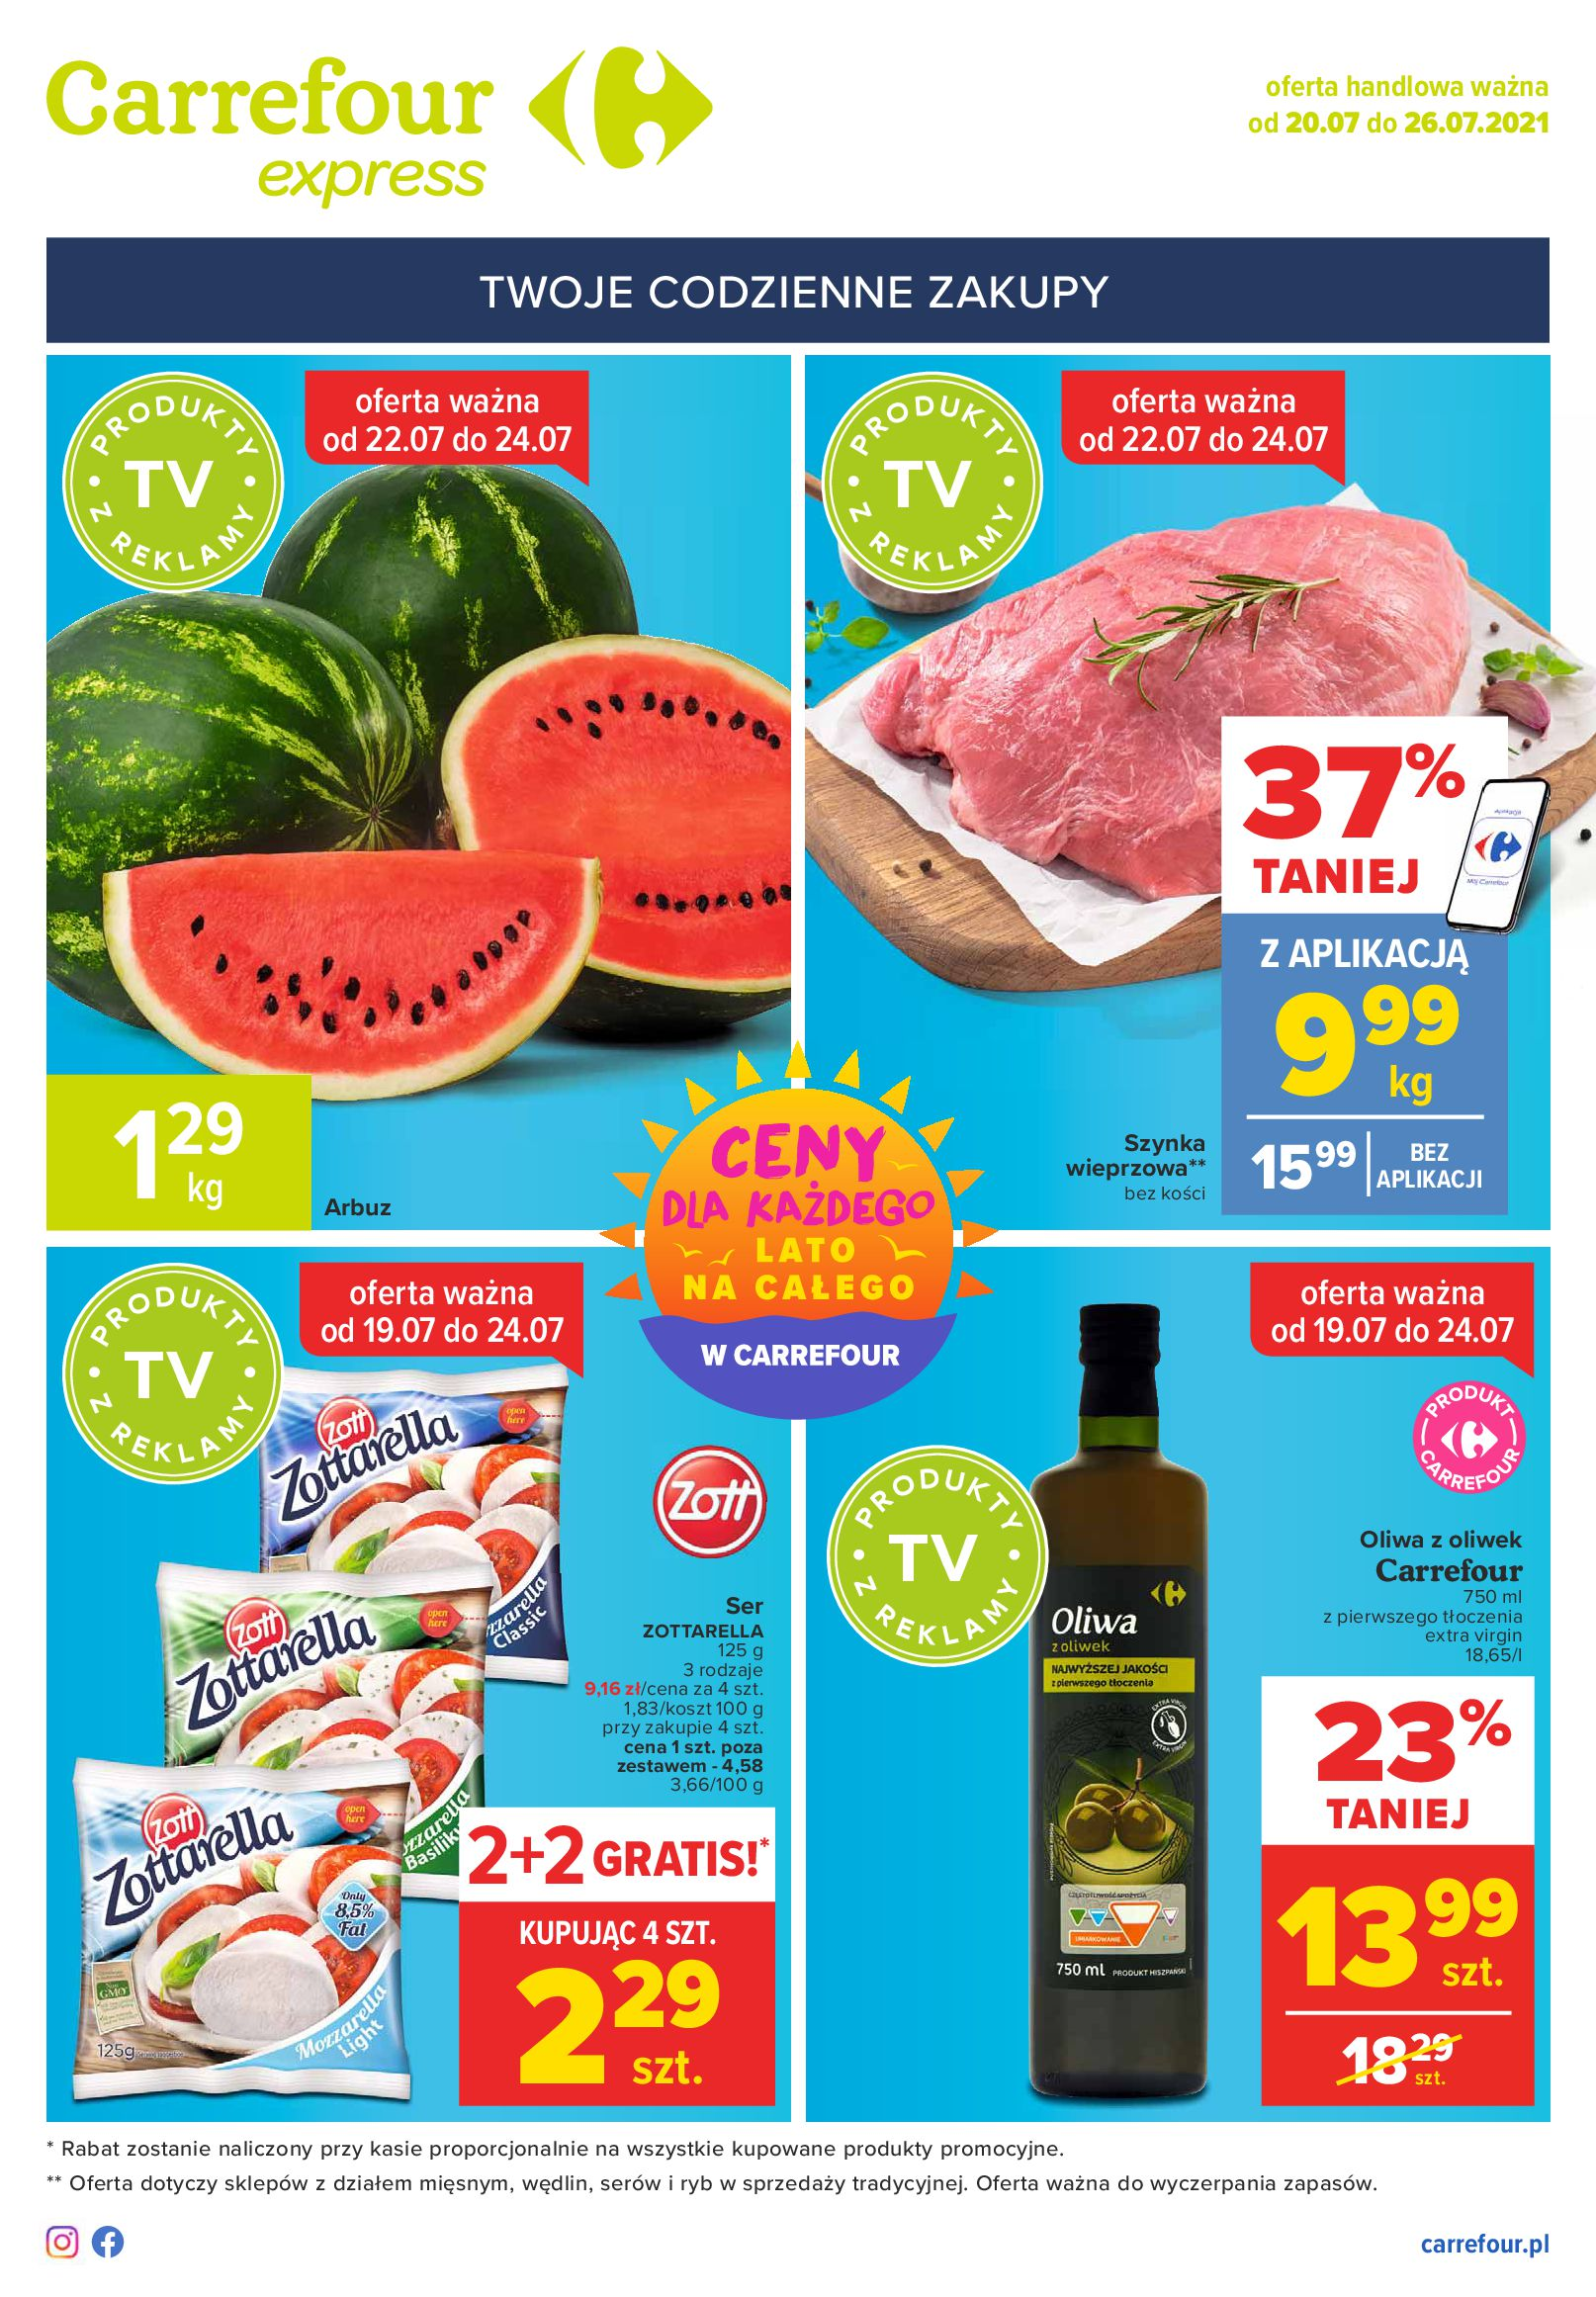 Gazetka Carrefour Express: Gazetka Carrefour Express 20-26.07 2021-07-20 page-1